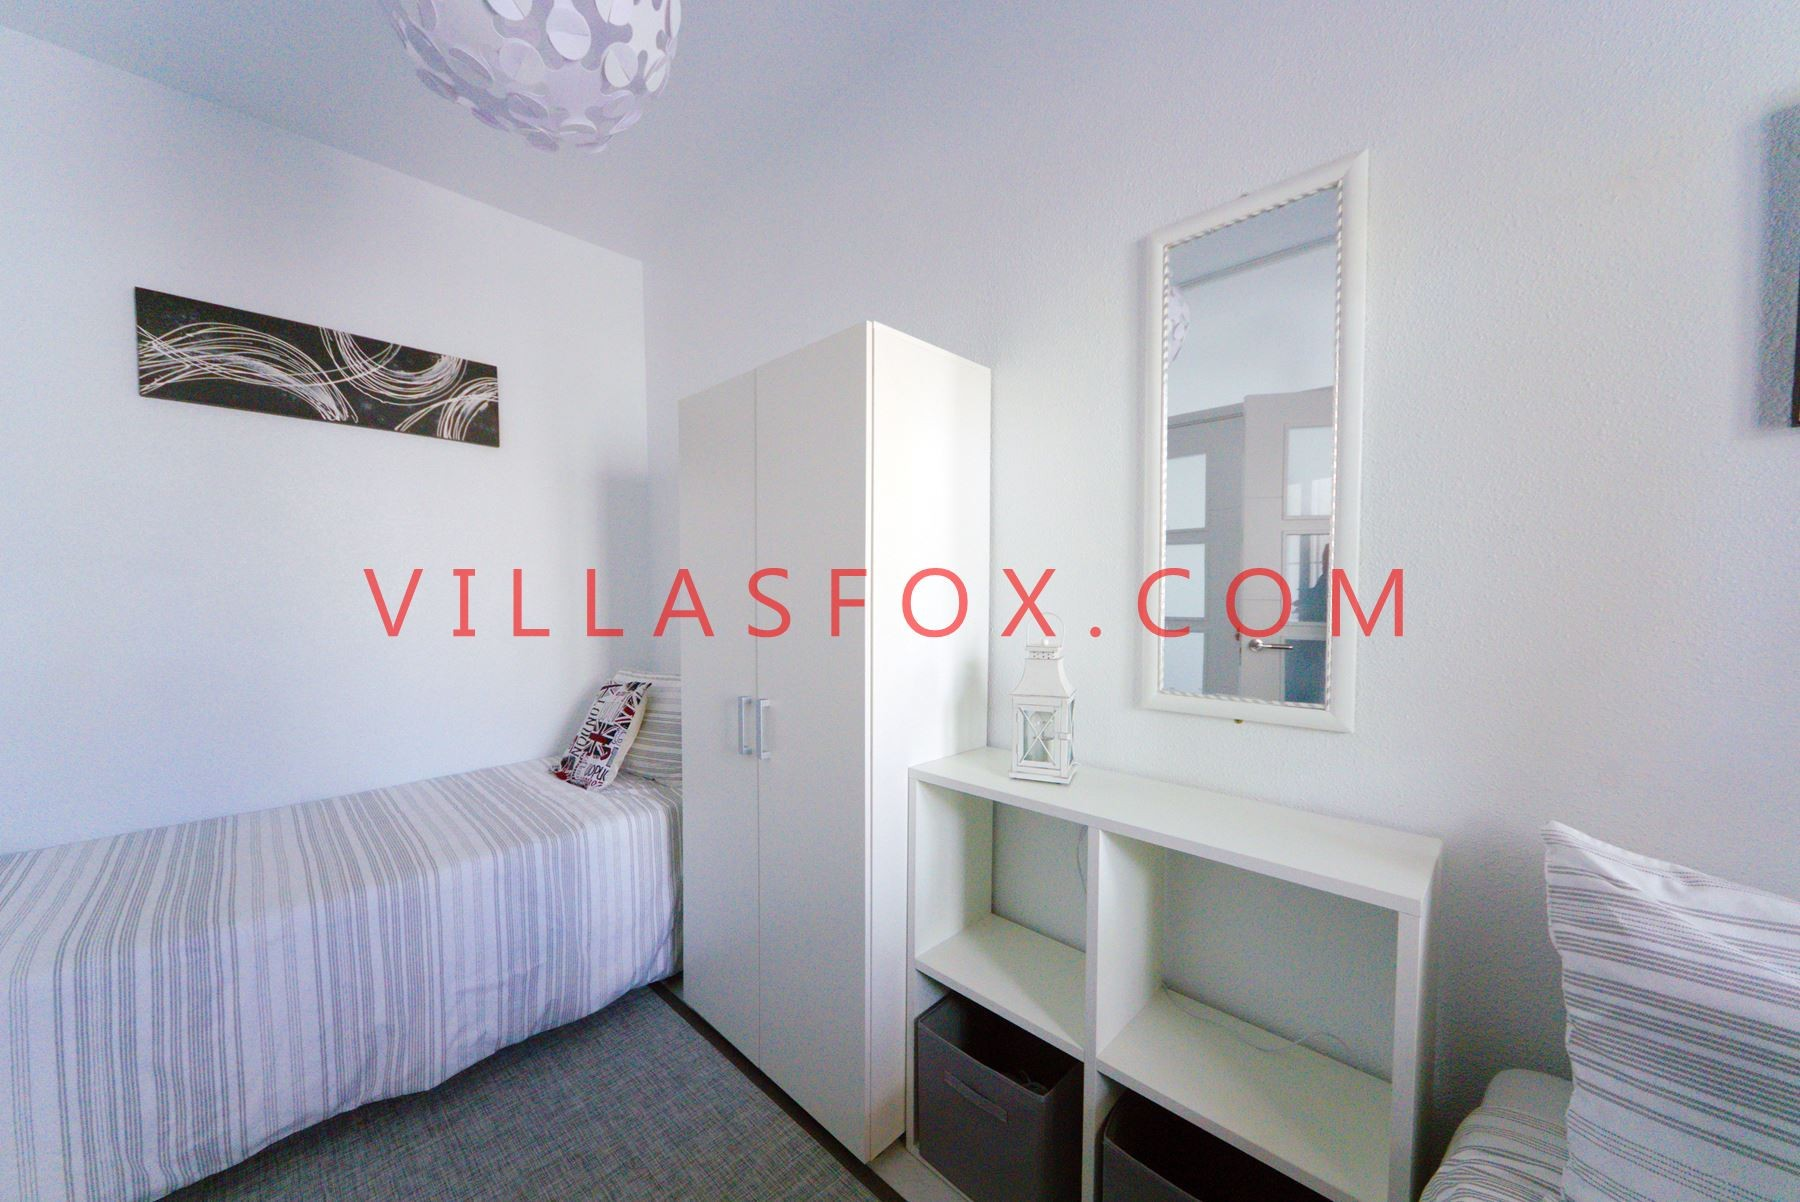 2-bedroom, 2-bathroom house on 2 levels, solarium, gardens, Blue Lagoon, San Miguel de Salinas